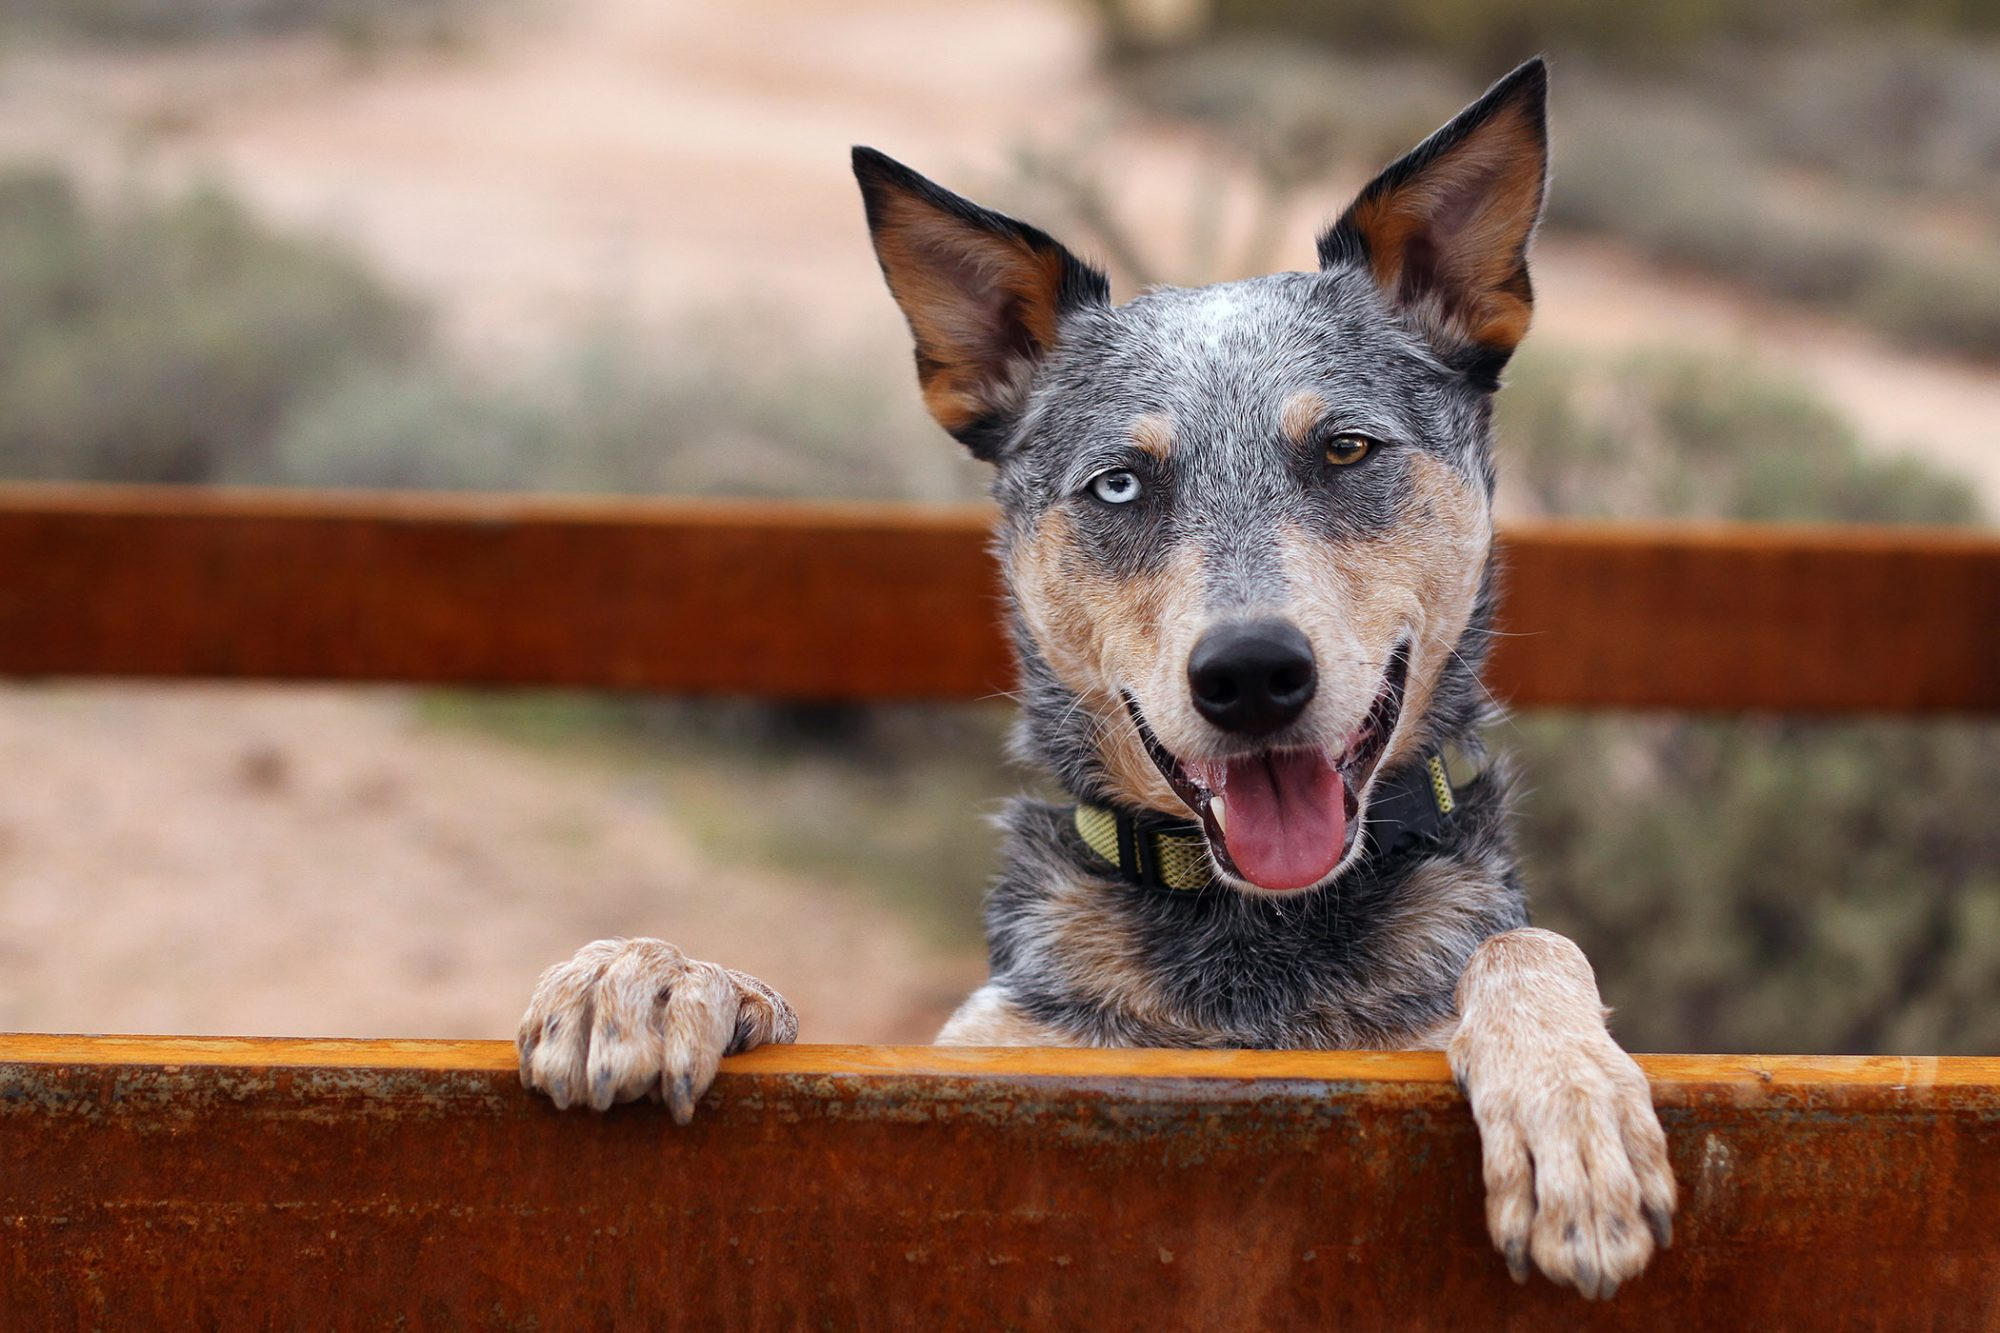 Austtralian cattle dog peering over fence